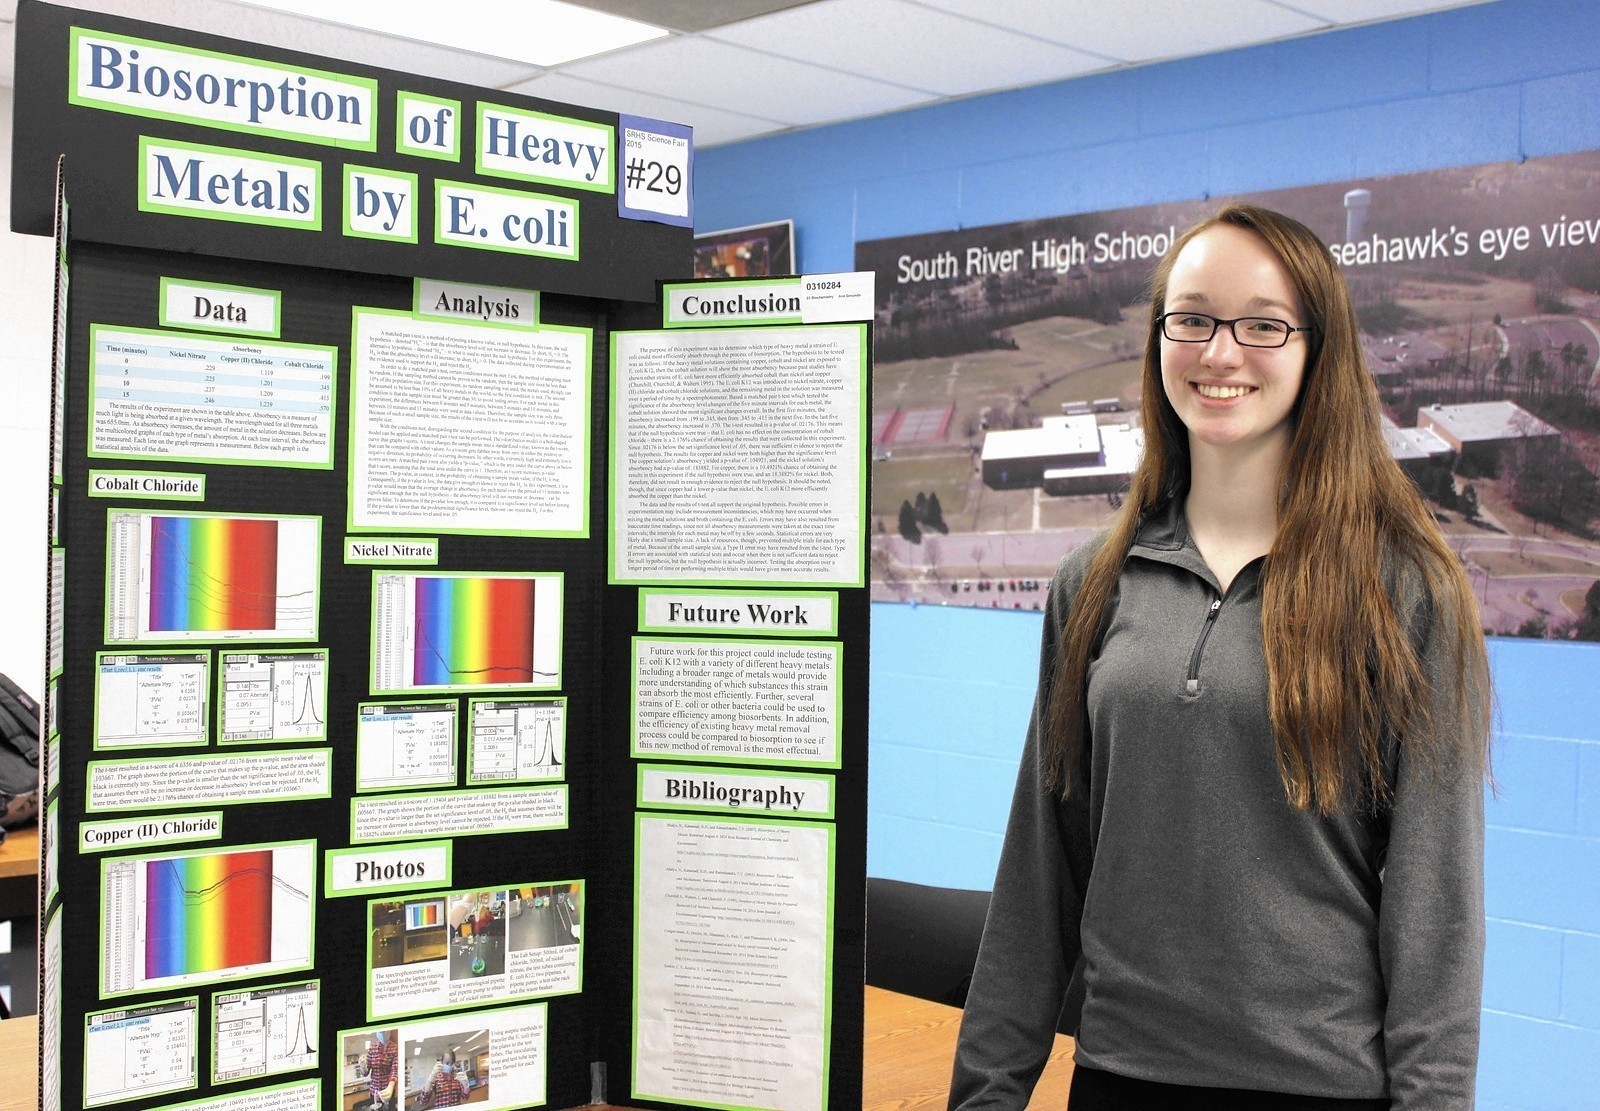 High school science fair project questioning